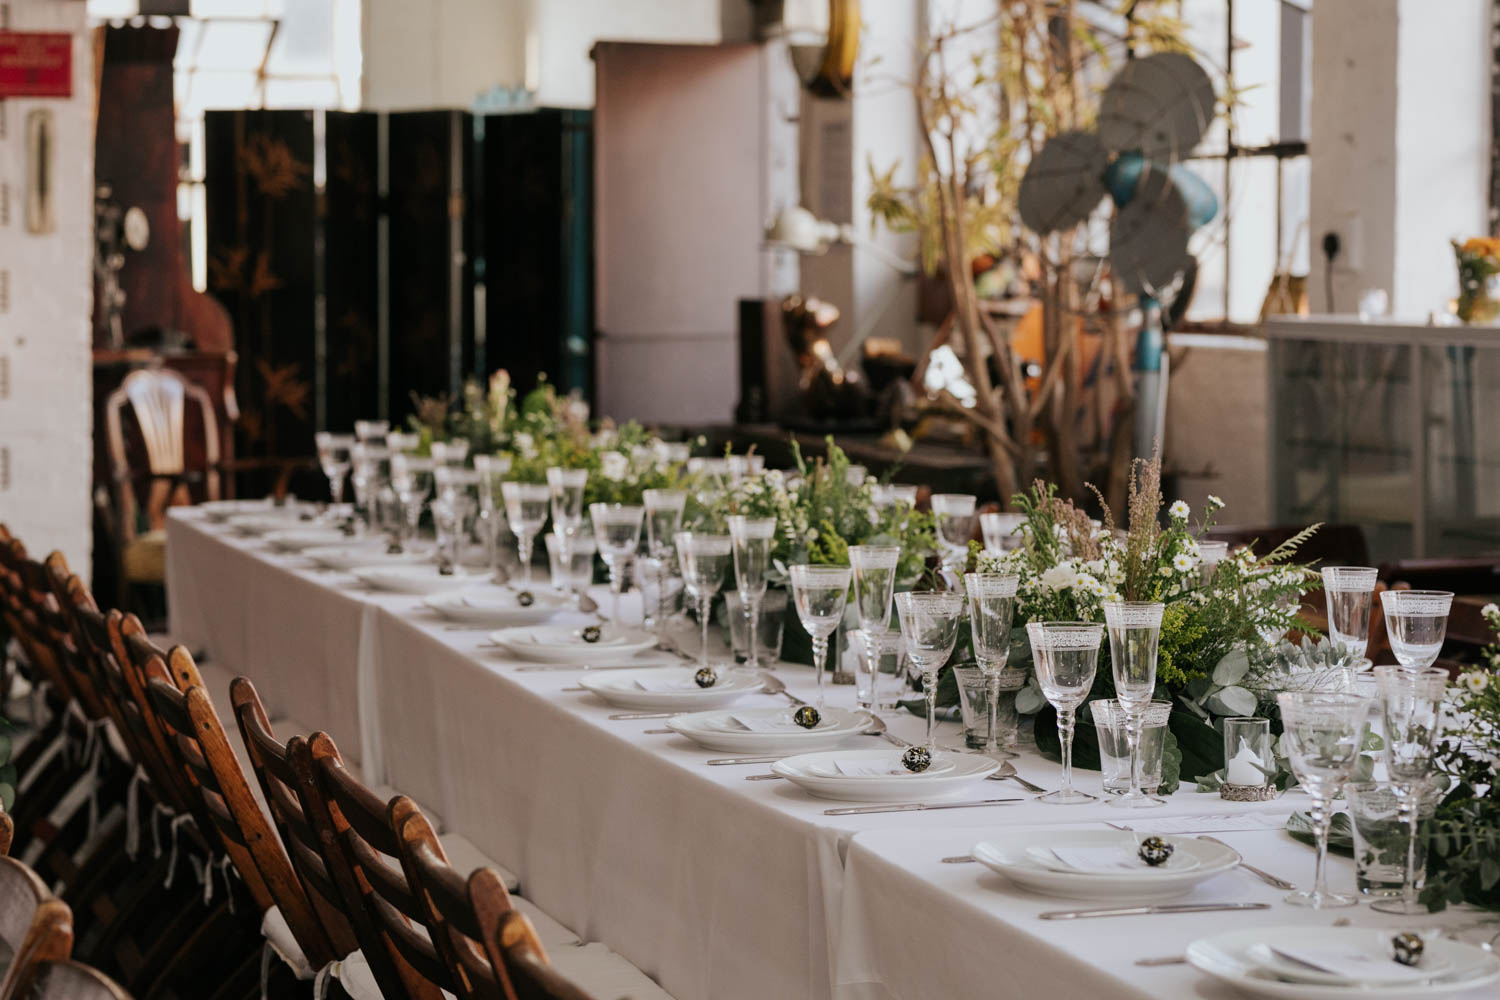 Simple White And Green Wedding Decor With Flowers, Eucalyptus Leaves, White Candles And Wooden Chairs.